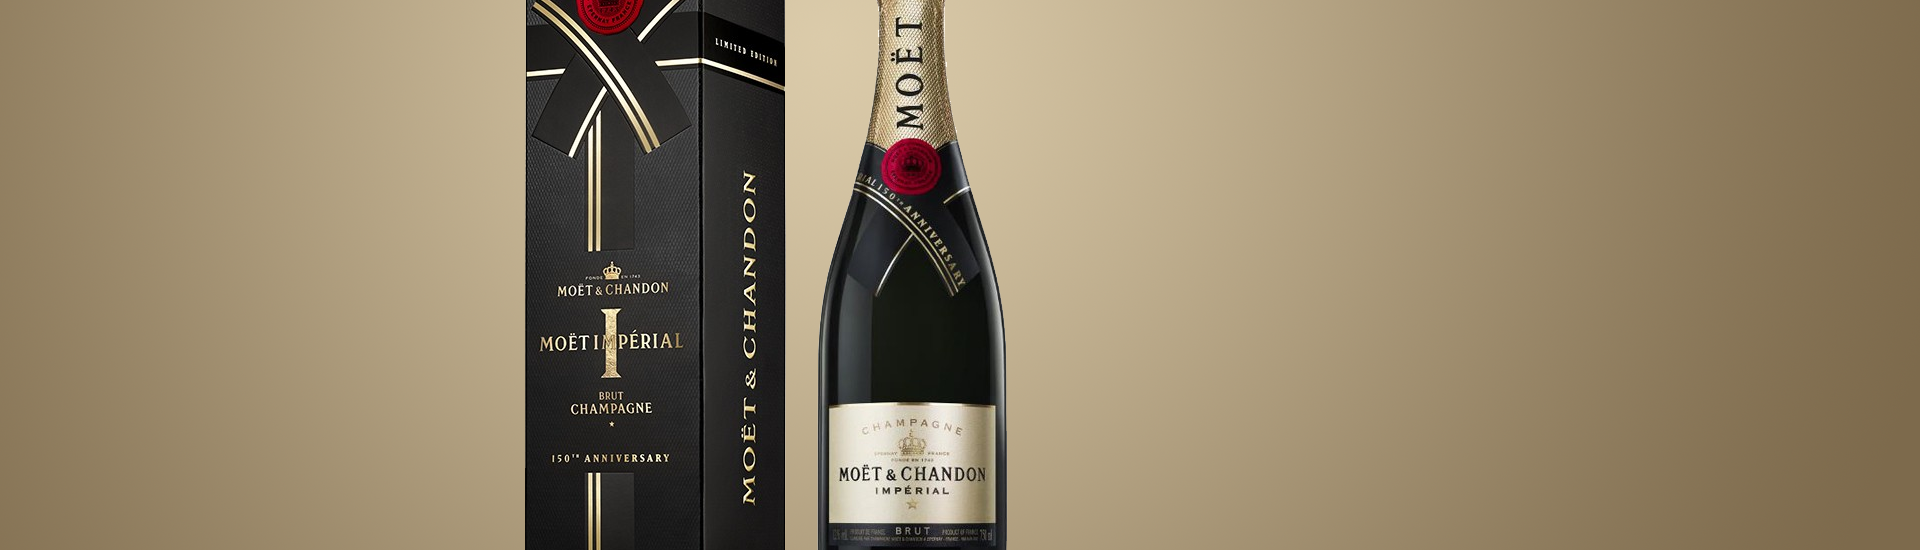 Moët & Chandon Brut Imperia  150 Anniversary Edition - Champagne